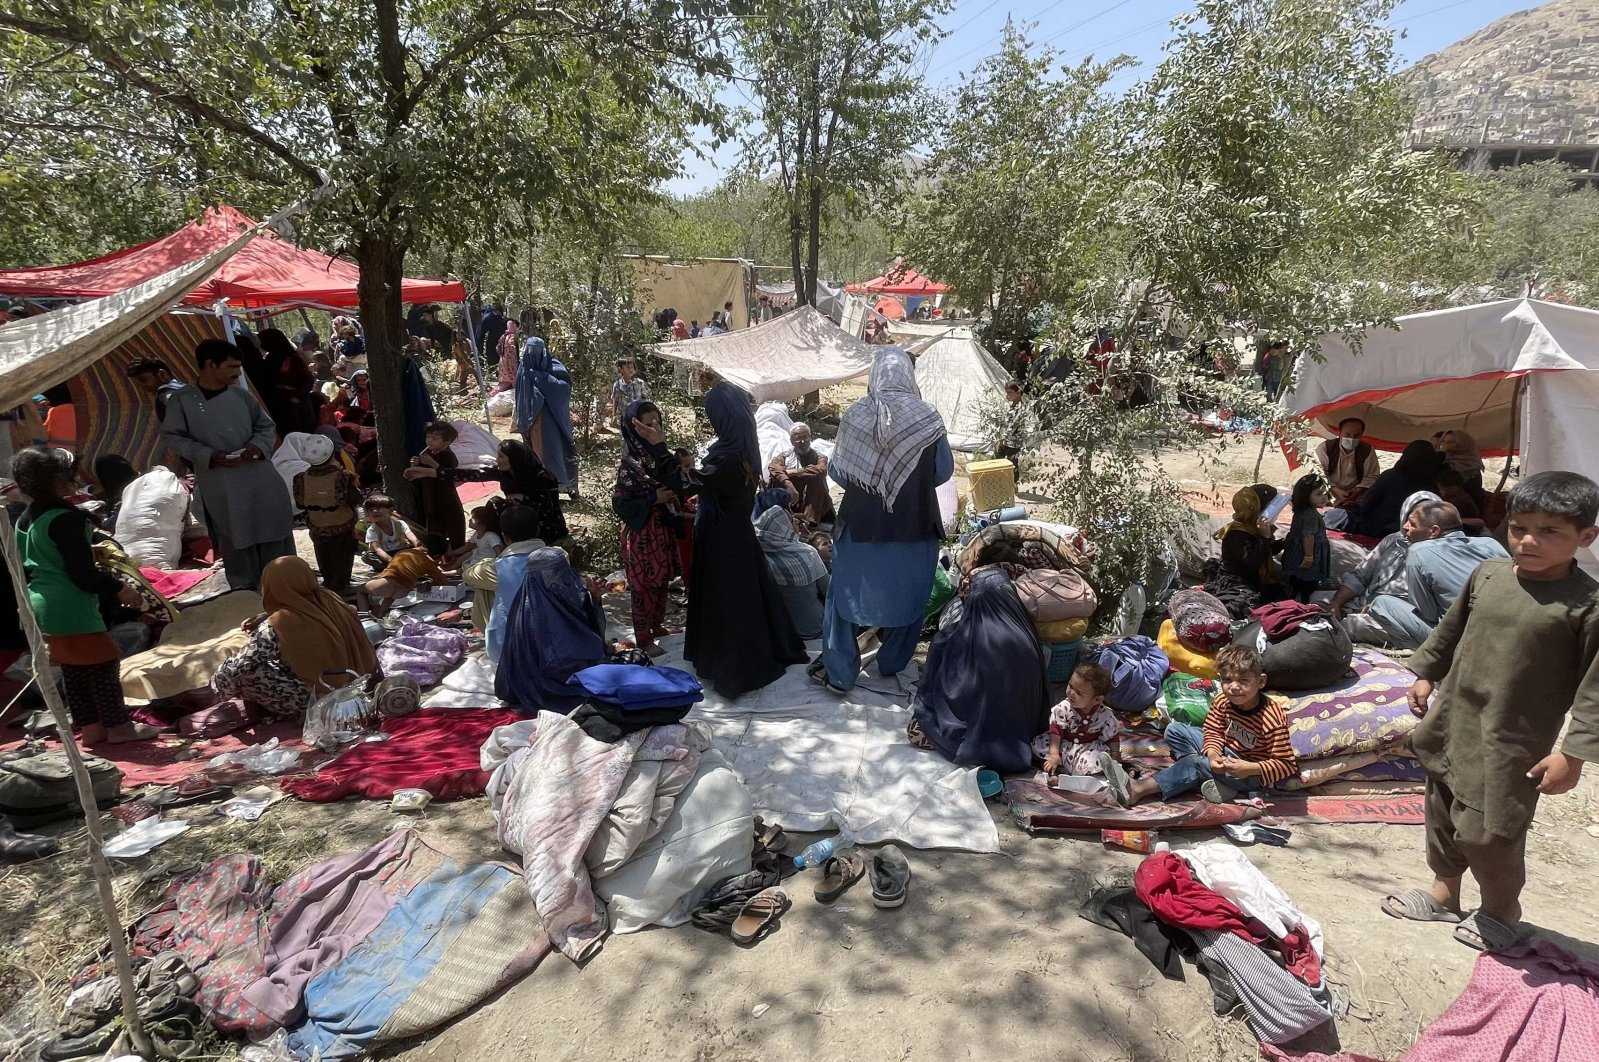 Afghan migrants, who left their homes due to the clashes between Afghan government forces and the Taliban, survive under difficult conditions in a park with makeshift tents they set up in the capital, Kabul, Afghanistan, on Aug. 8, 2021. (AA Photo)